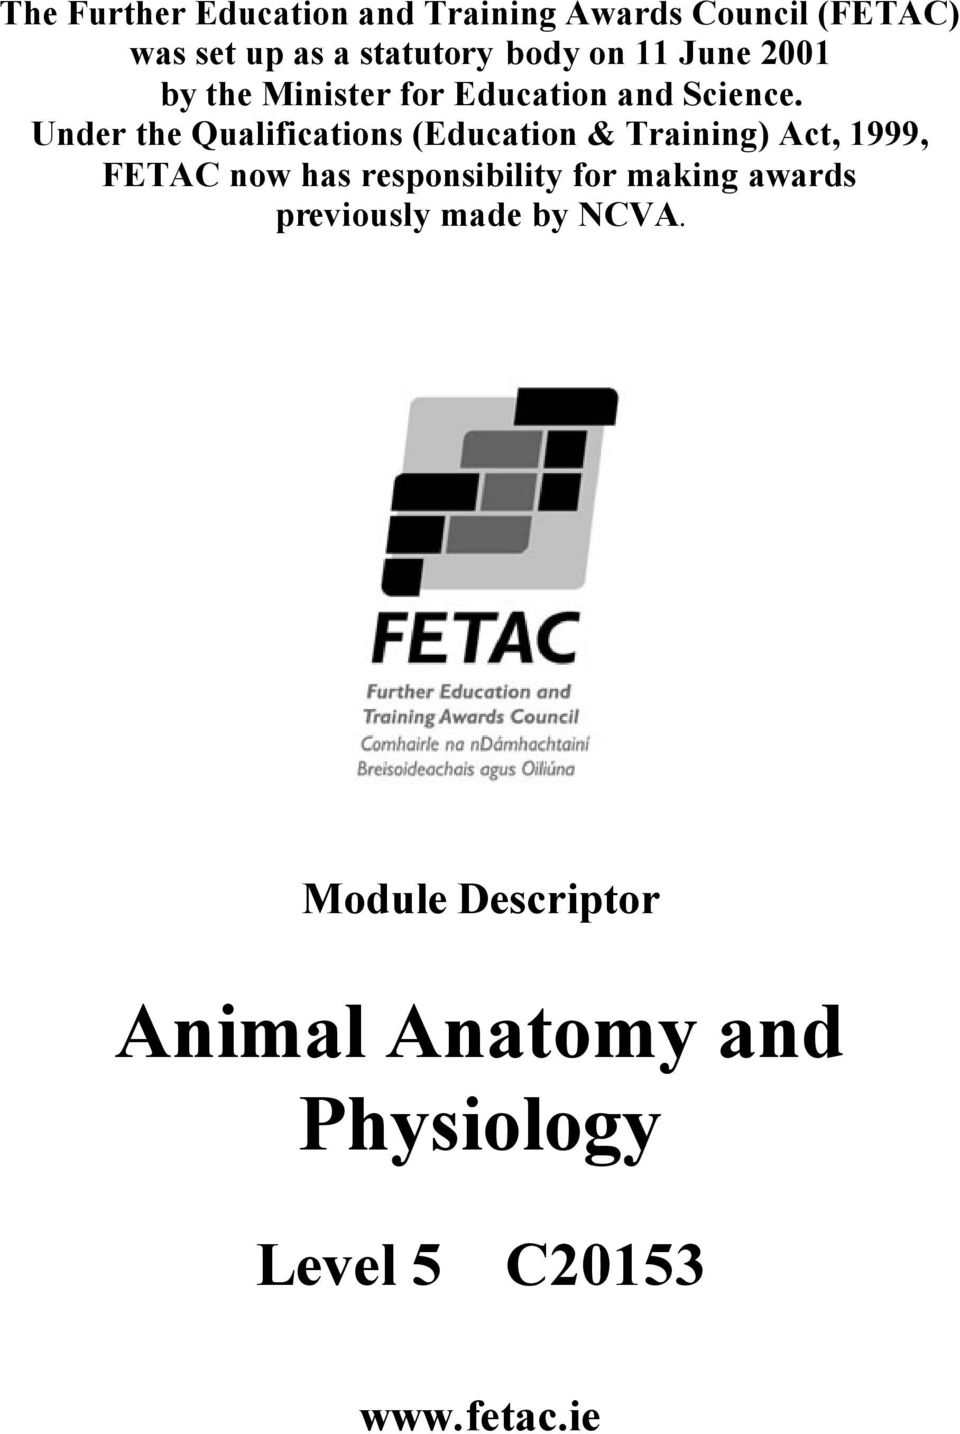 Under the Qualifications (Education & Training) Act, 1999, FETAC now has responsibility